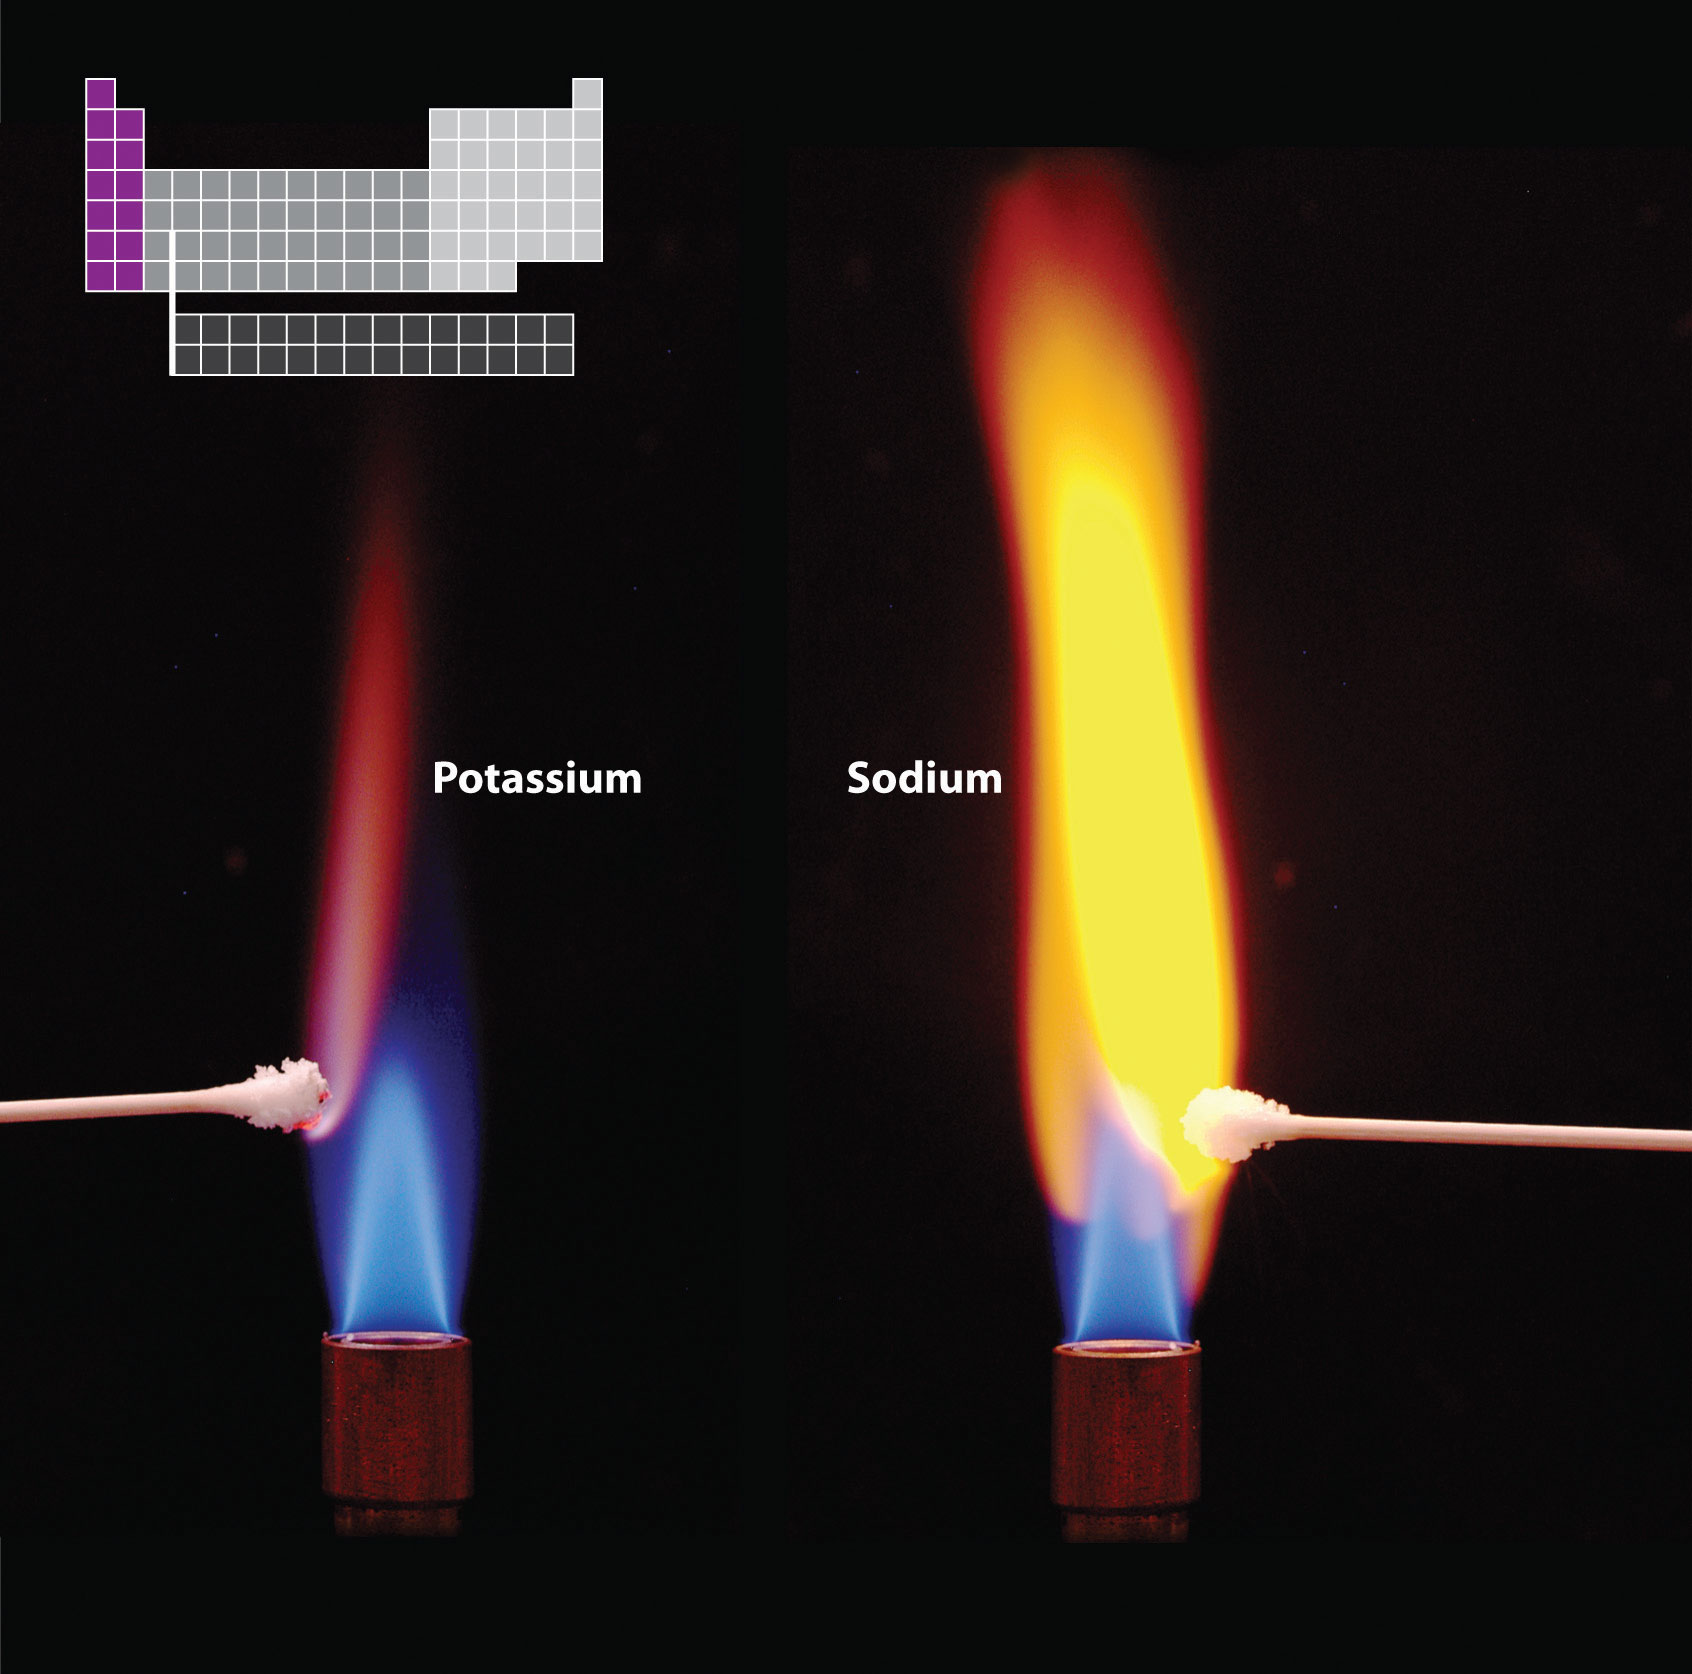 flame tests These are the post-lab questions and background information for a lab concerning flame tests for various metal salts in solution.